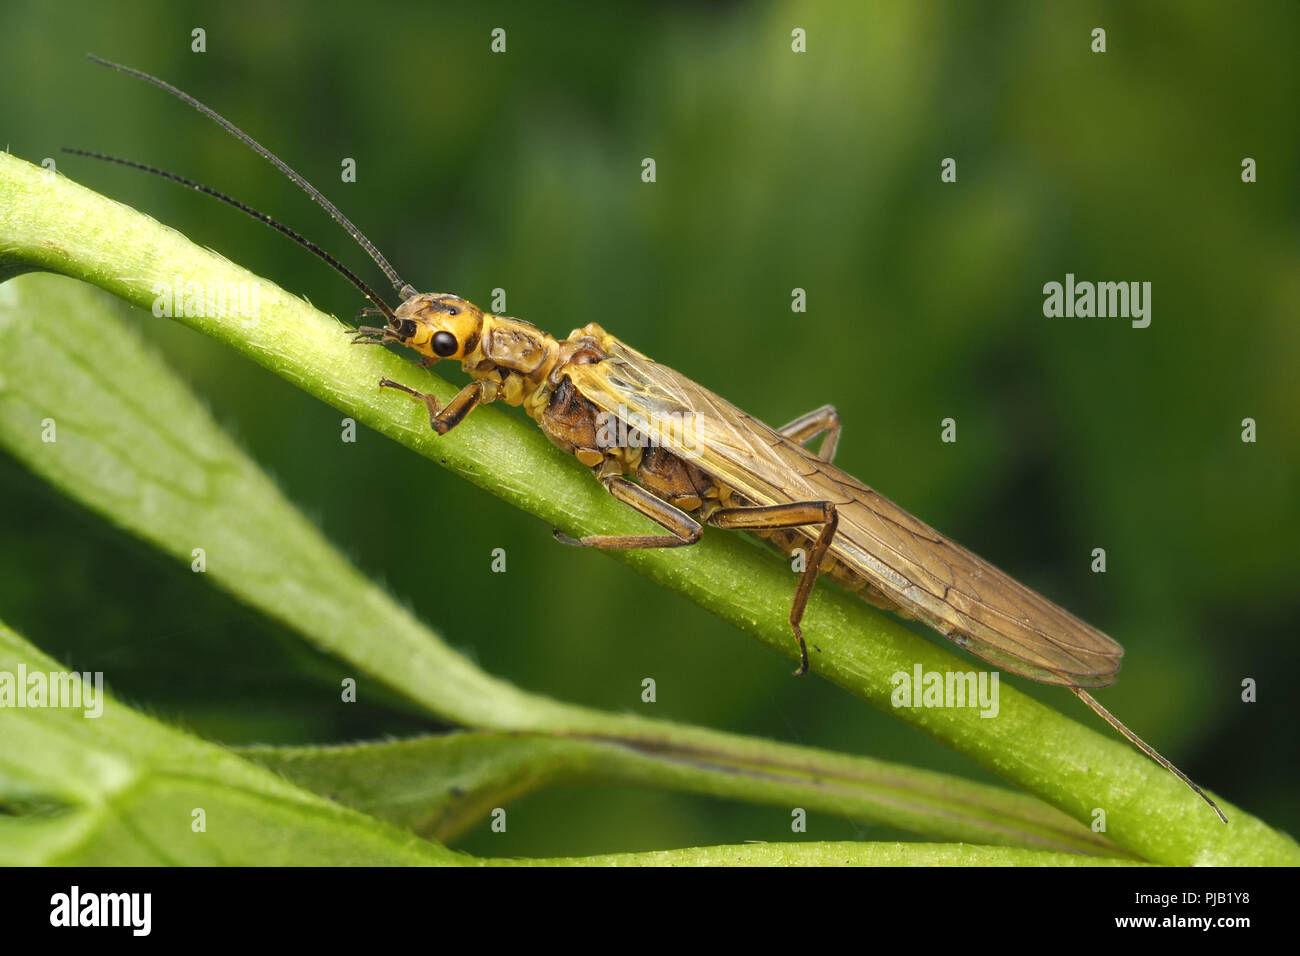 Stonefly (Isoperla grammatica) perched on creeping buttercup. Tipperary, Ireland - Stock Image